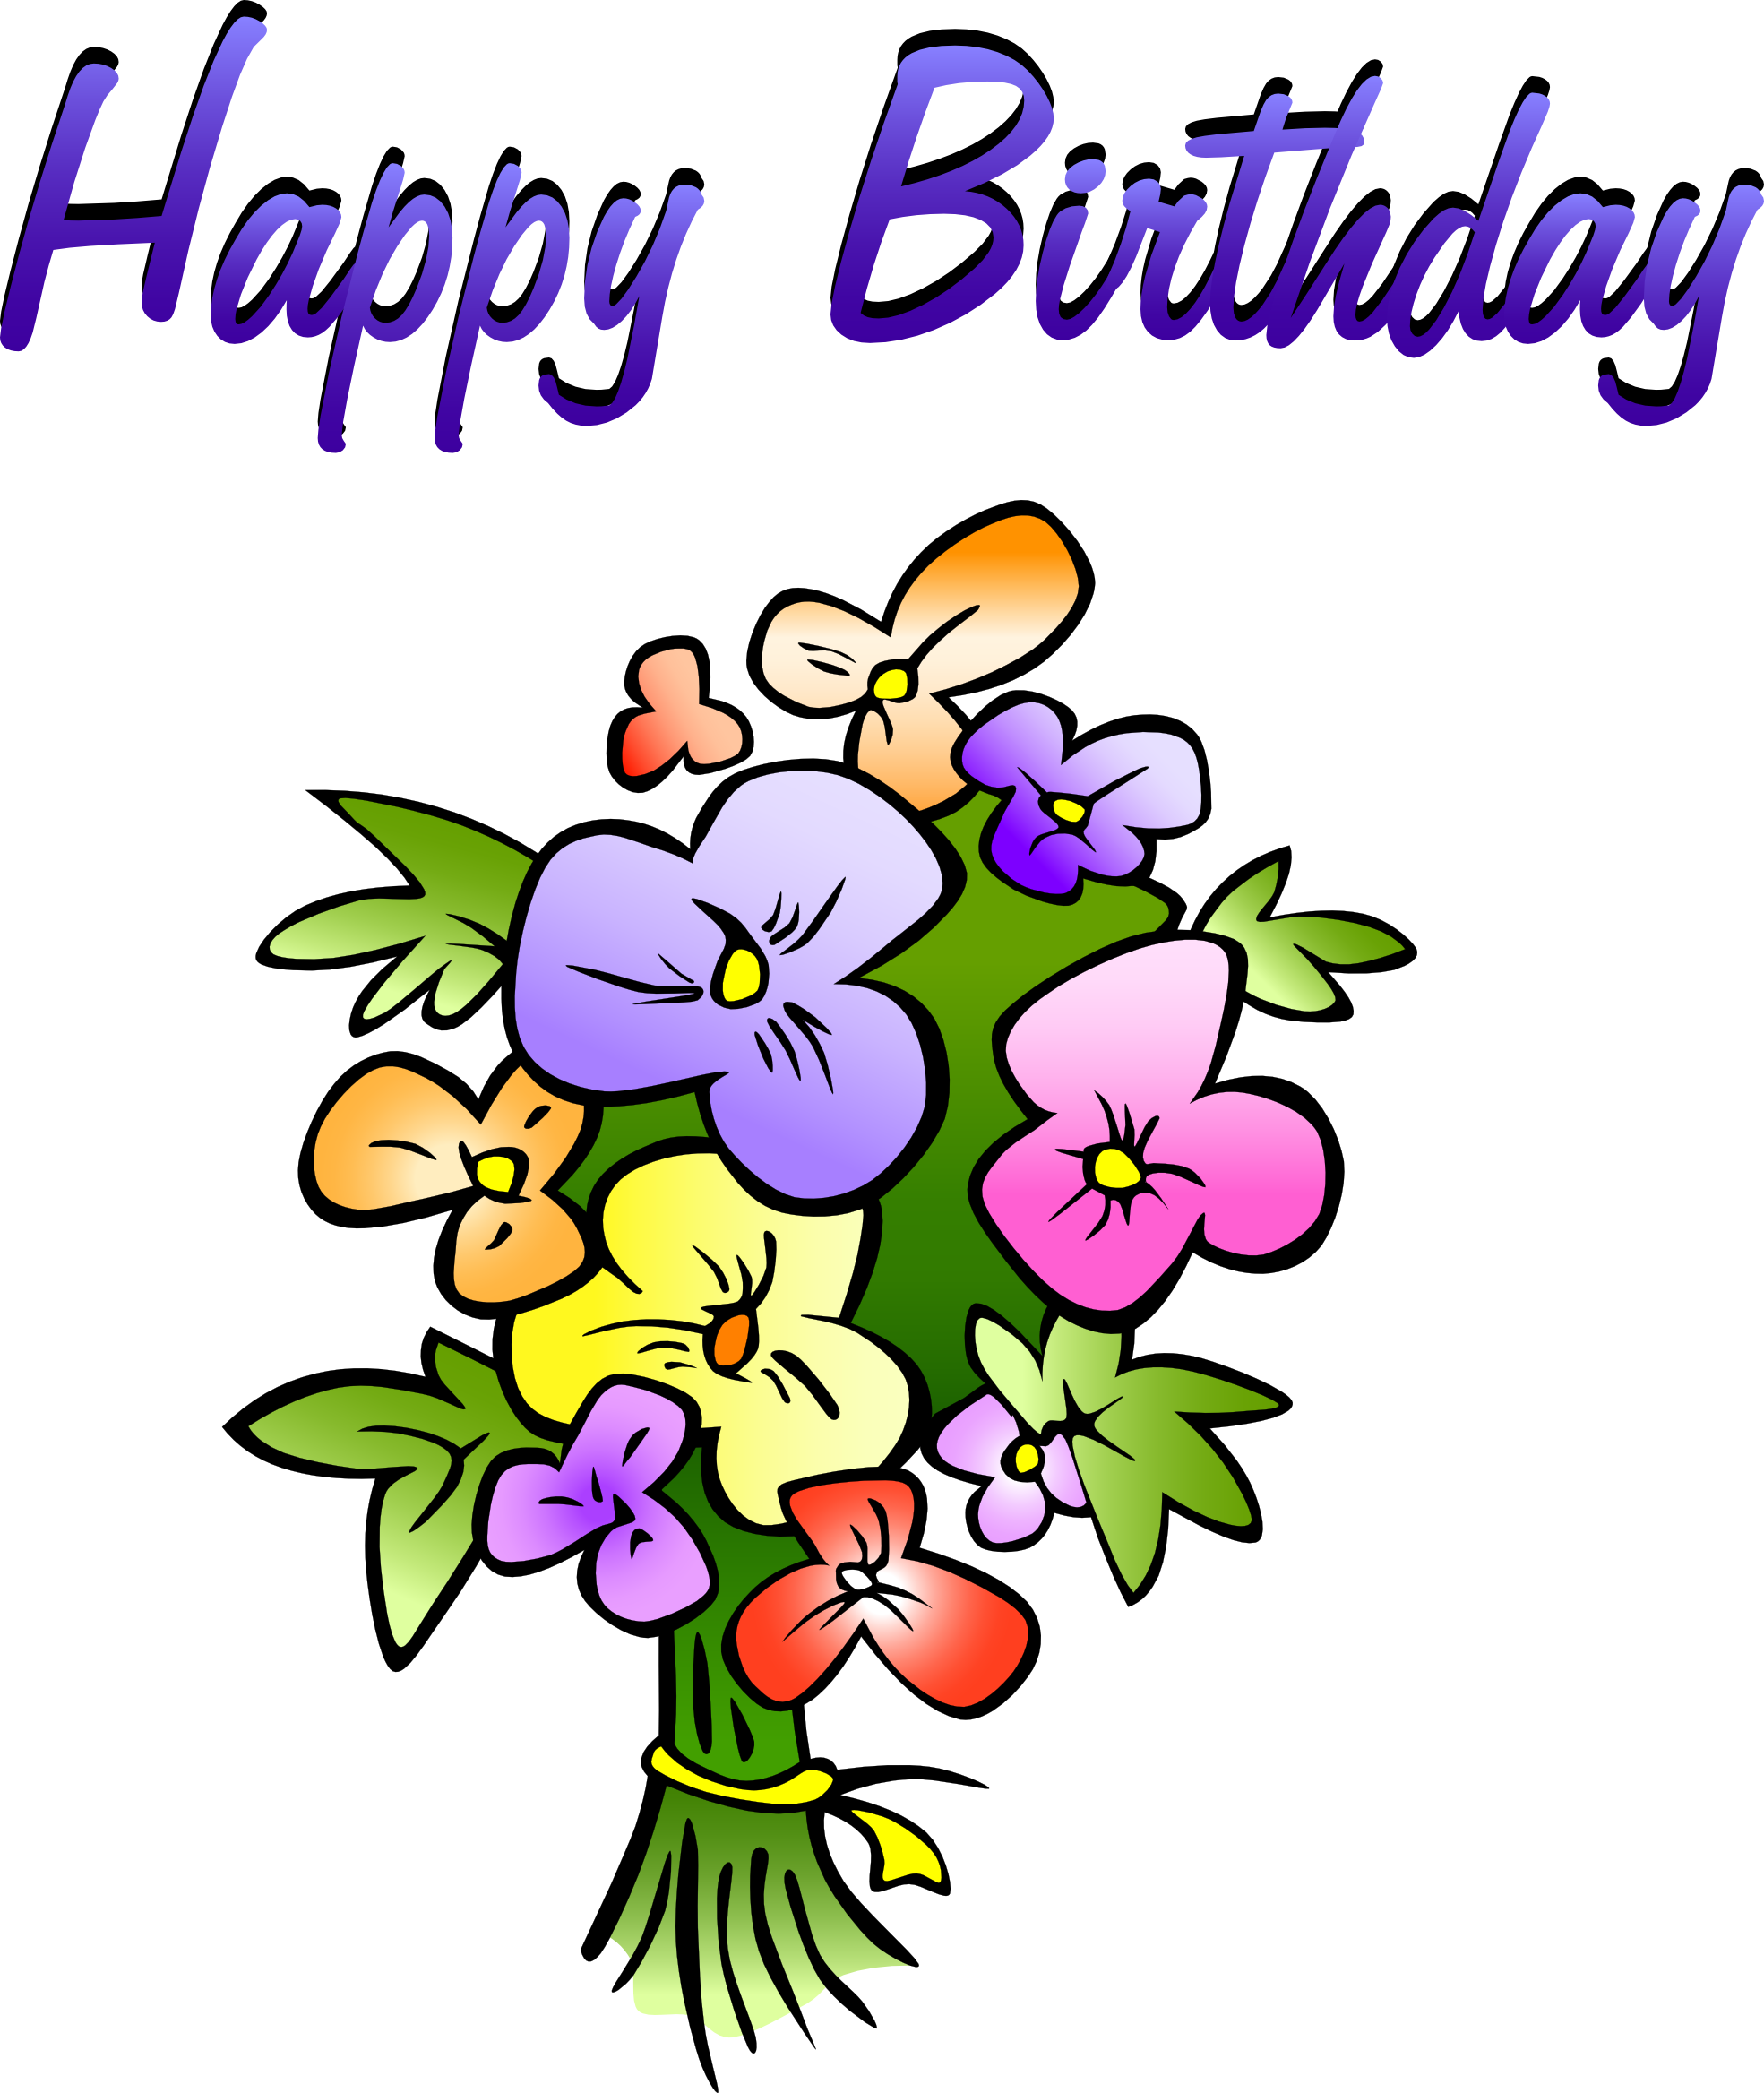 Congratulations clipart congratulation word. Happy birthday flowers pi